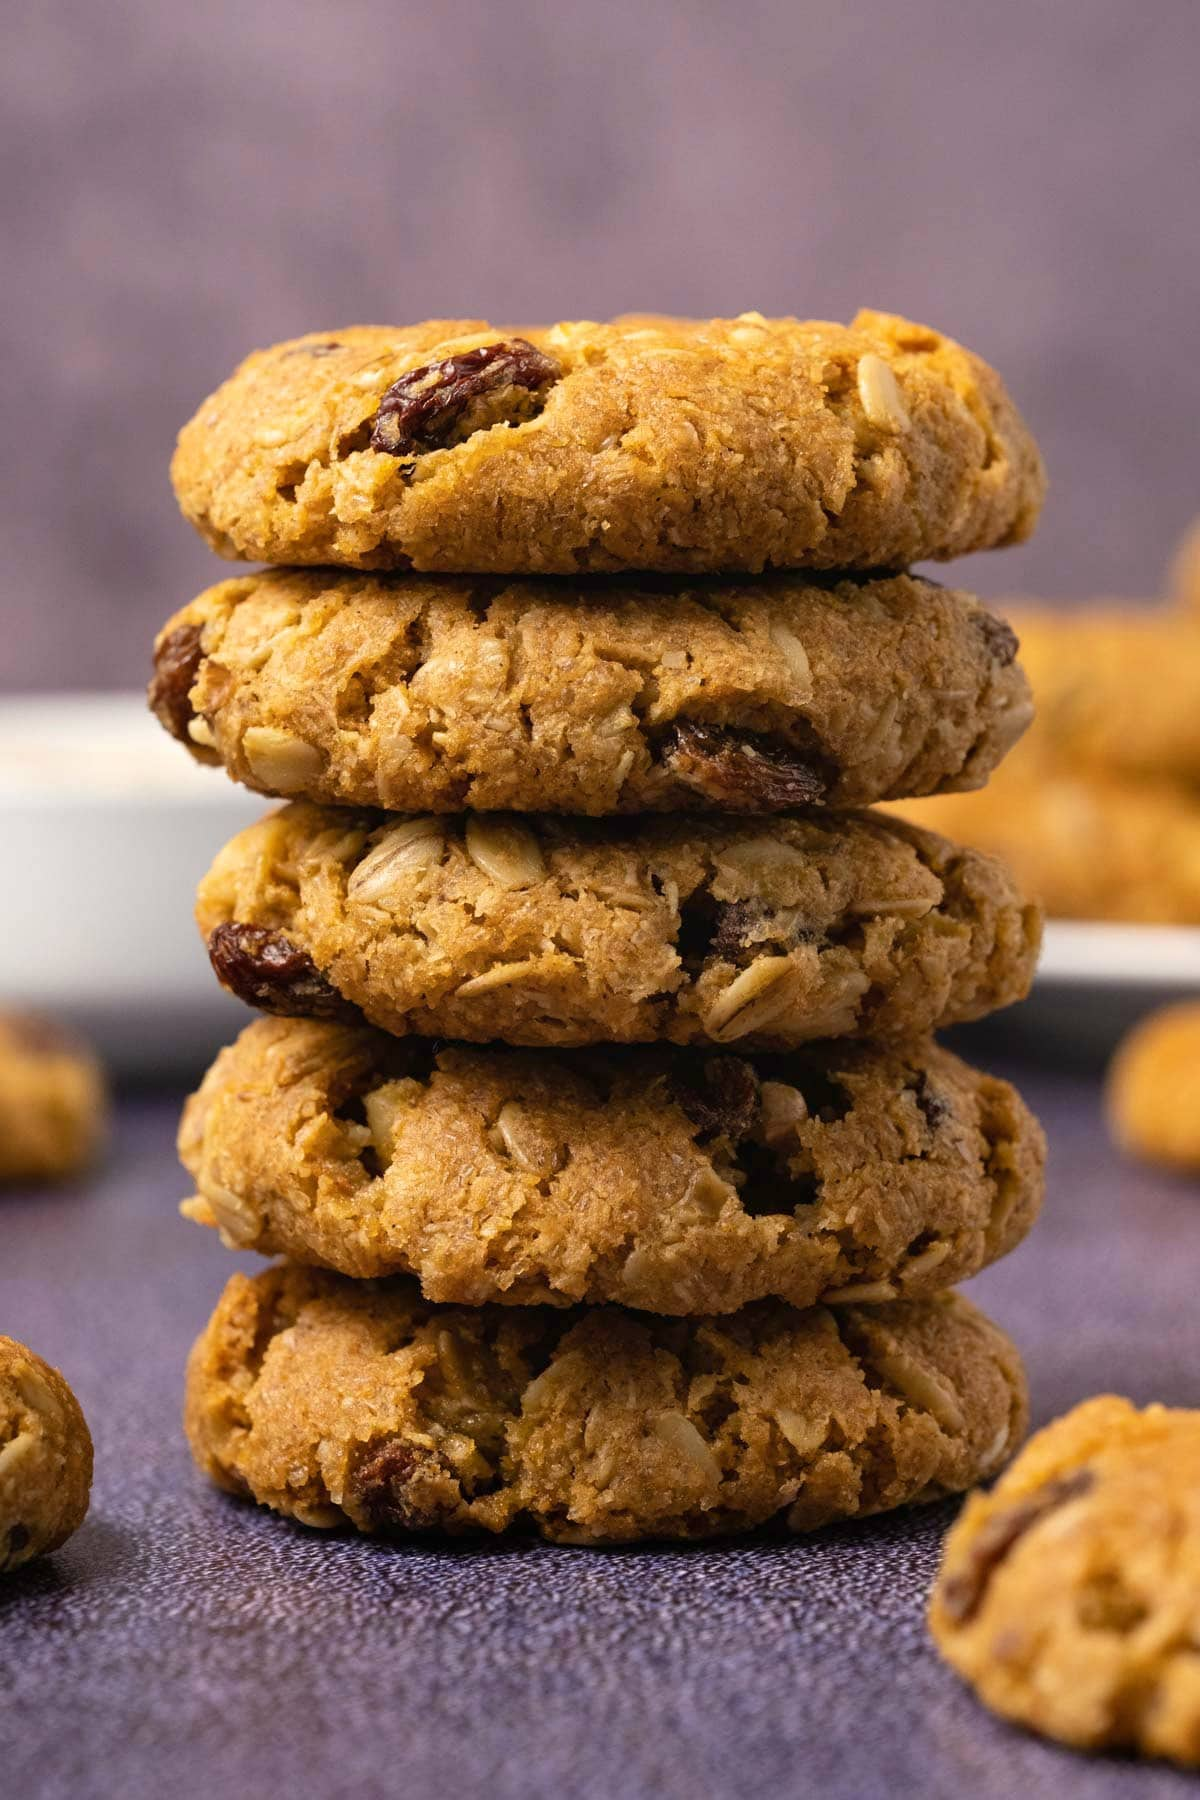 Oatmeal raisin cookies in a stack.